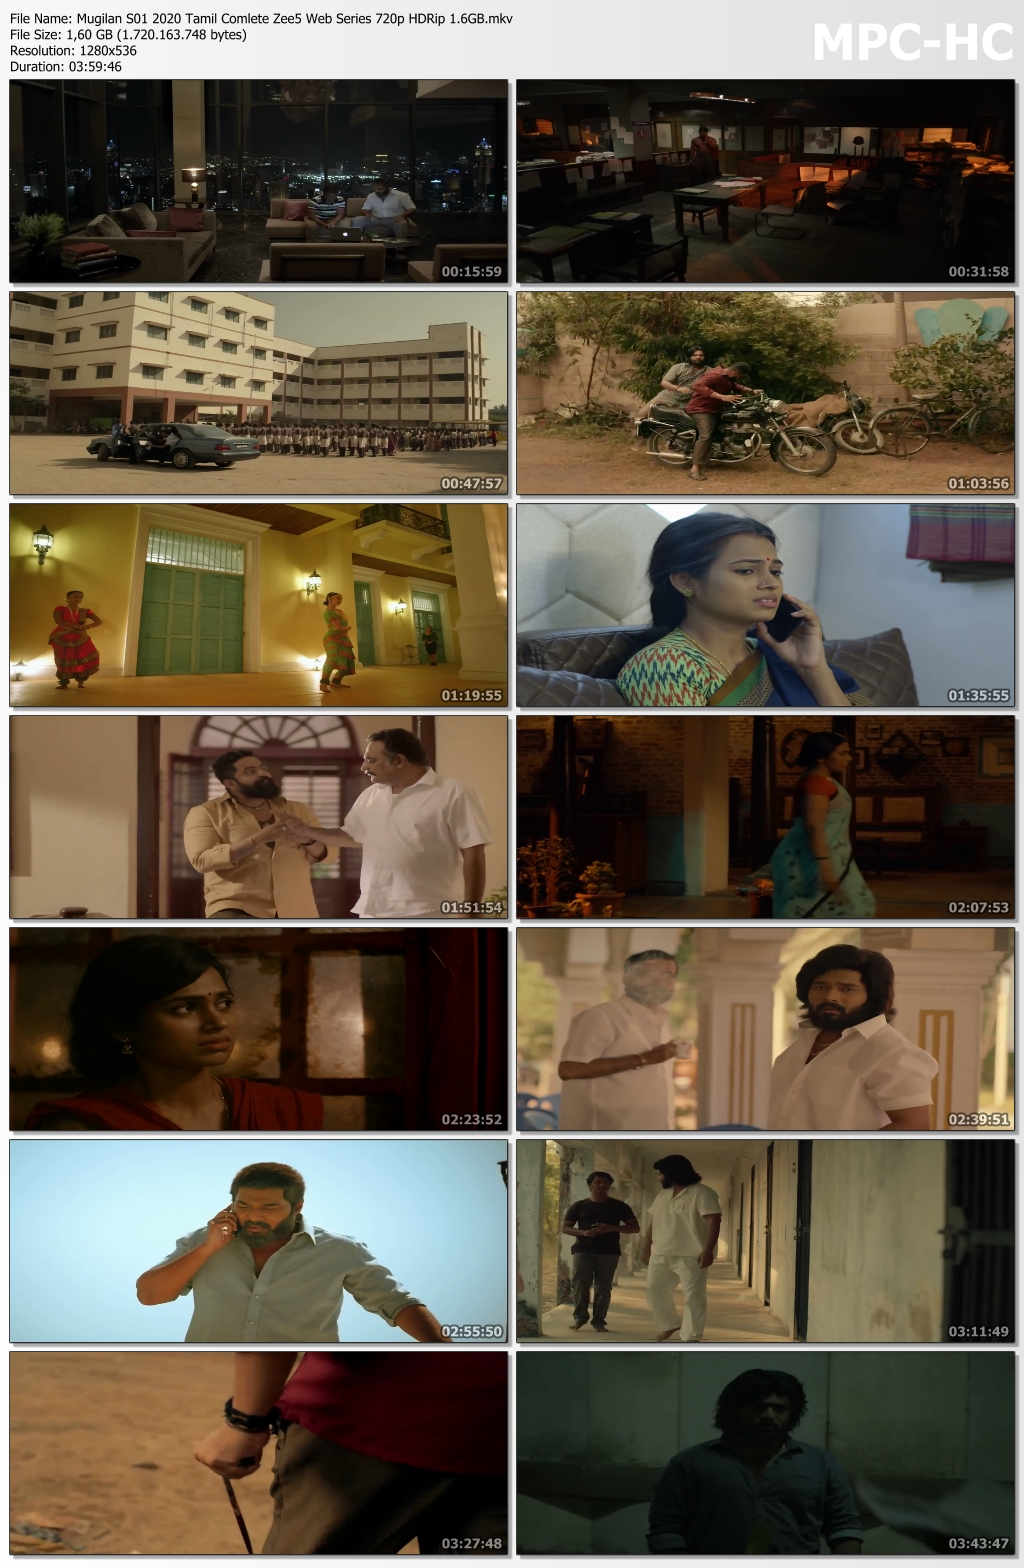 Mugilan-S01-2020-Tamil-Comlete-Zee5-Web-Series-720p-HDRip-1-6-GB-mkv-thumbs